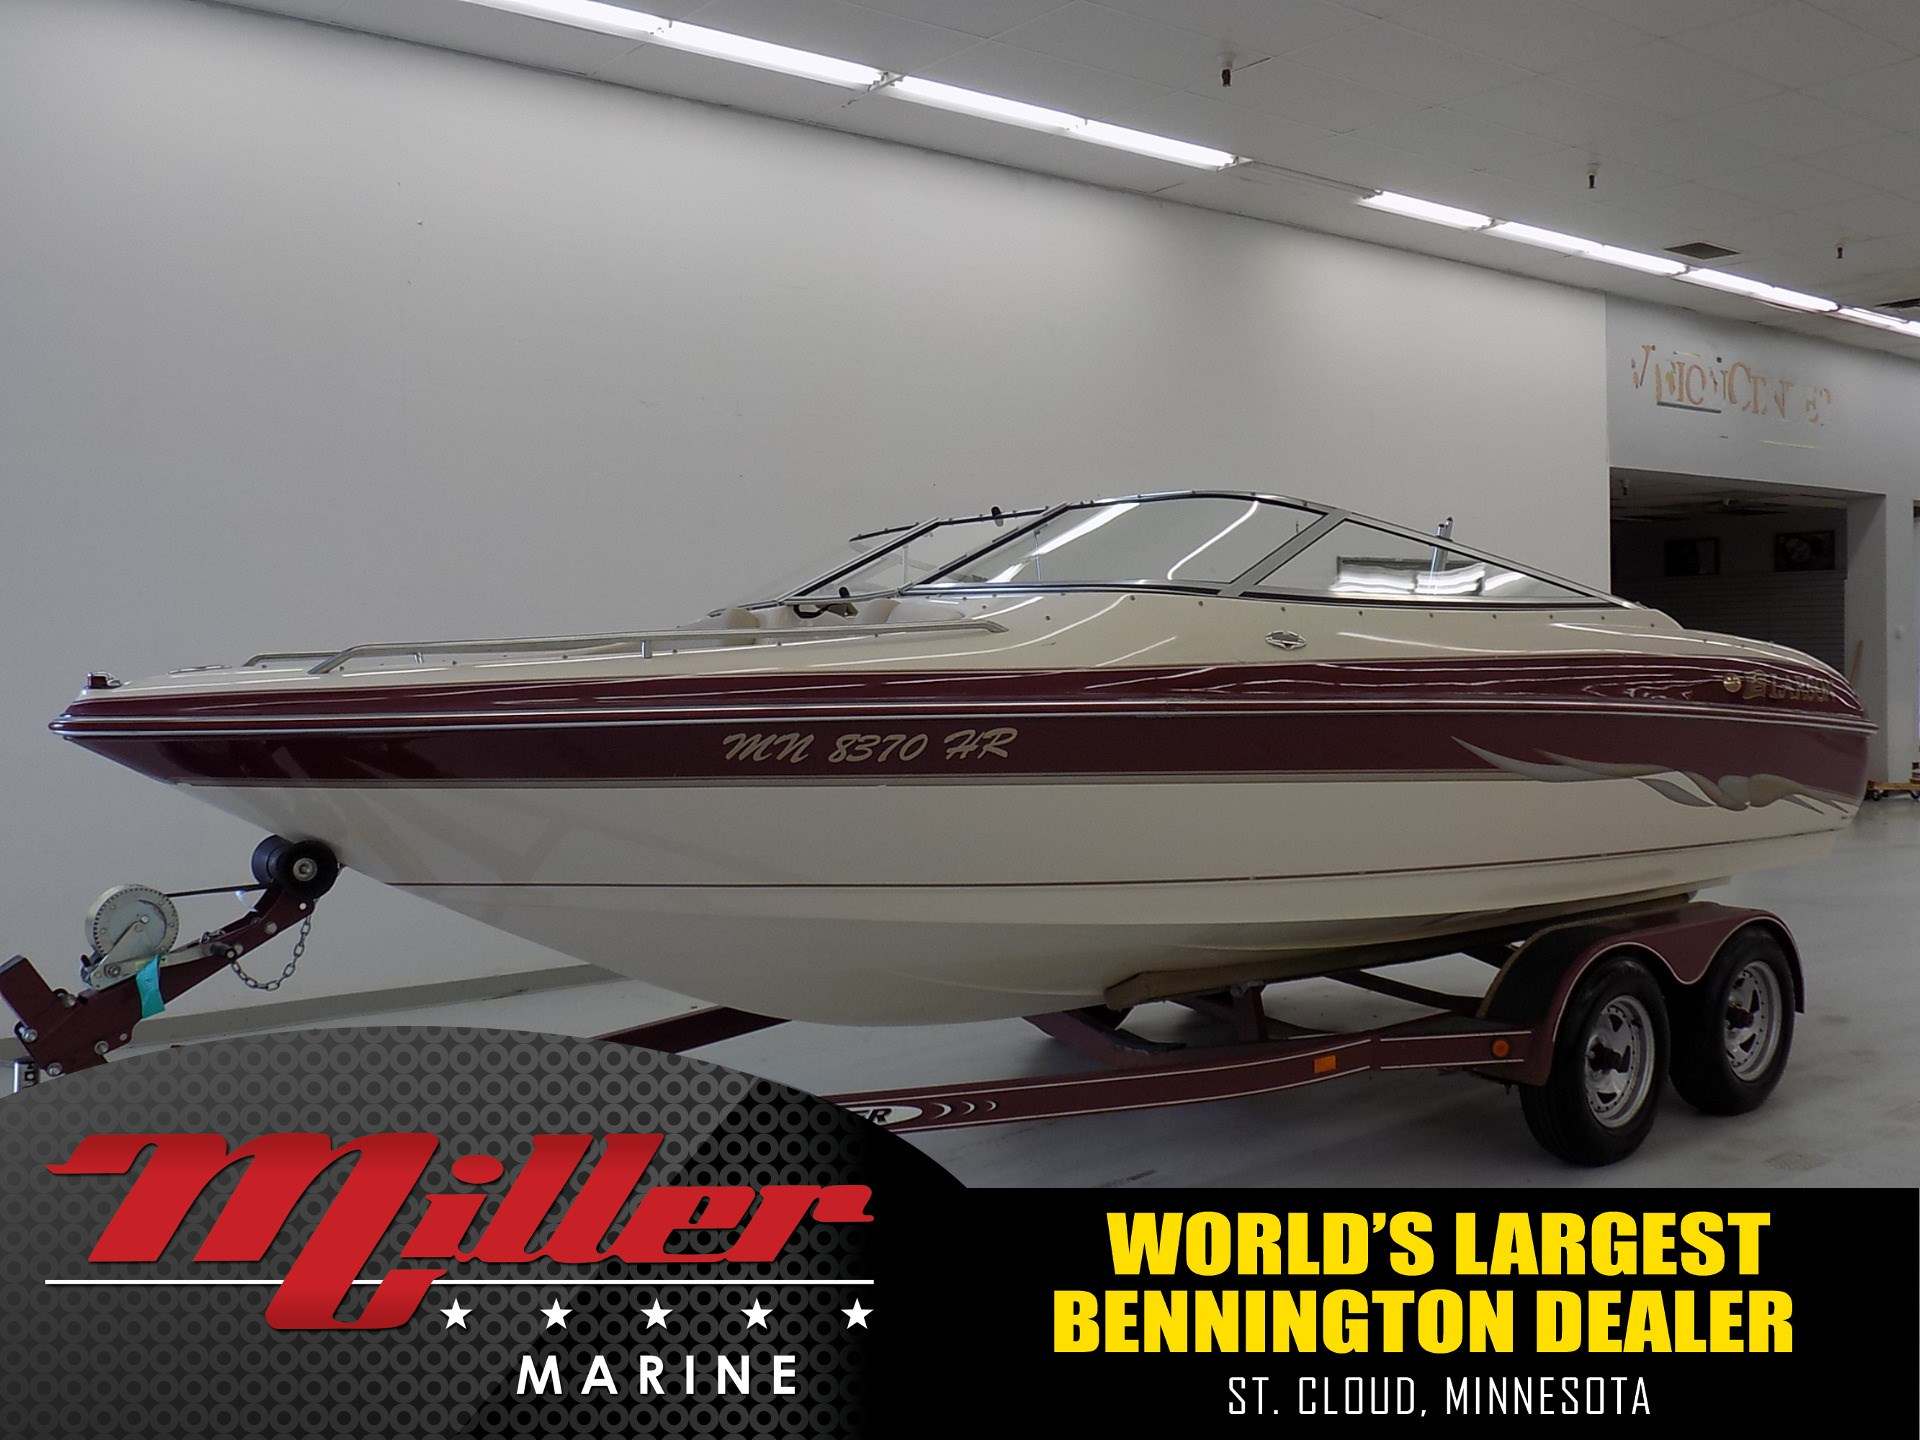 1999 larson 206 lxi 20 foot 1999 larson motor boat in saint cloud mn 4282873958 used boats. Black Bedroom Furniture Sets. Home Design Ideas